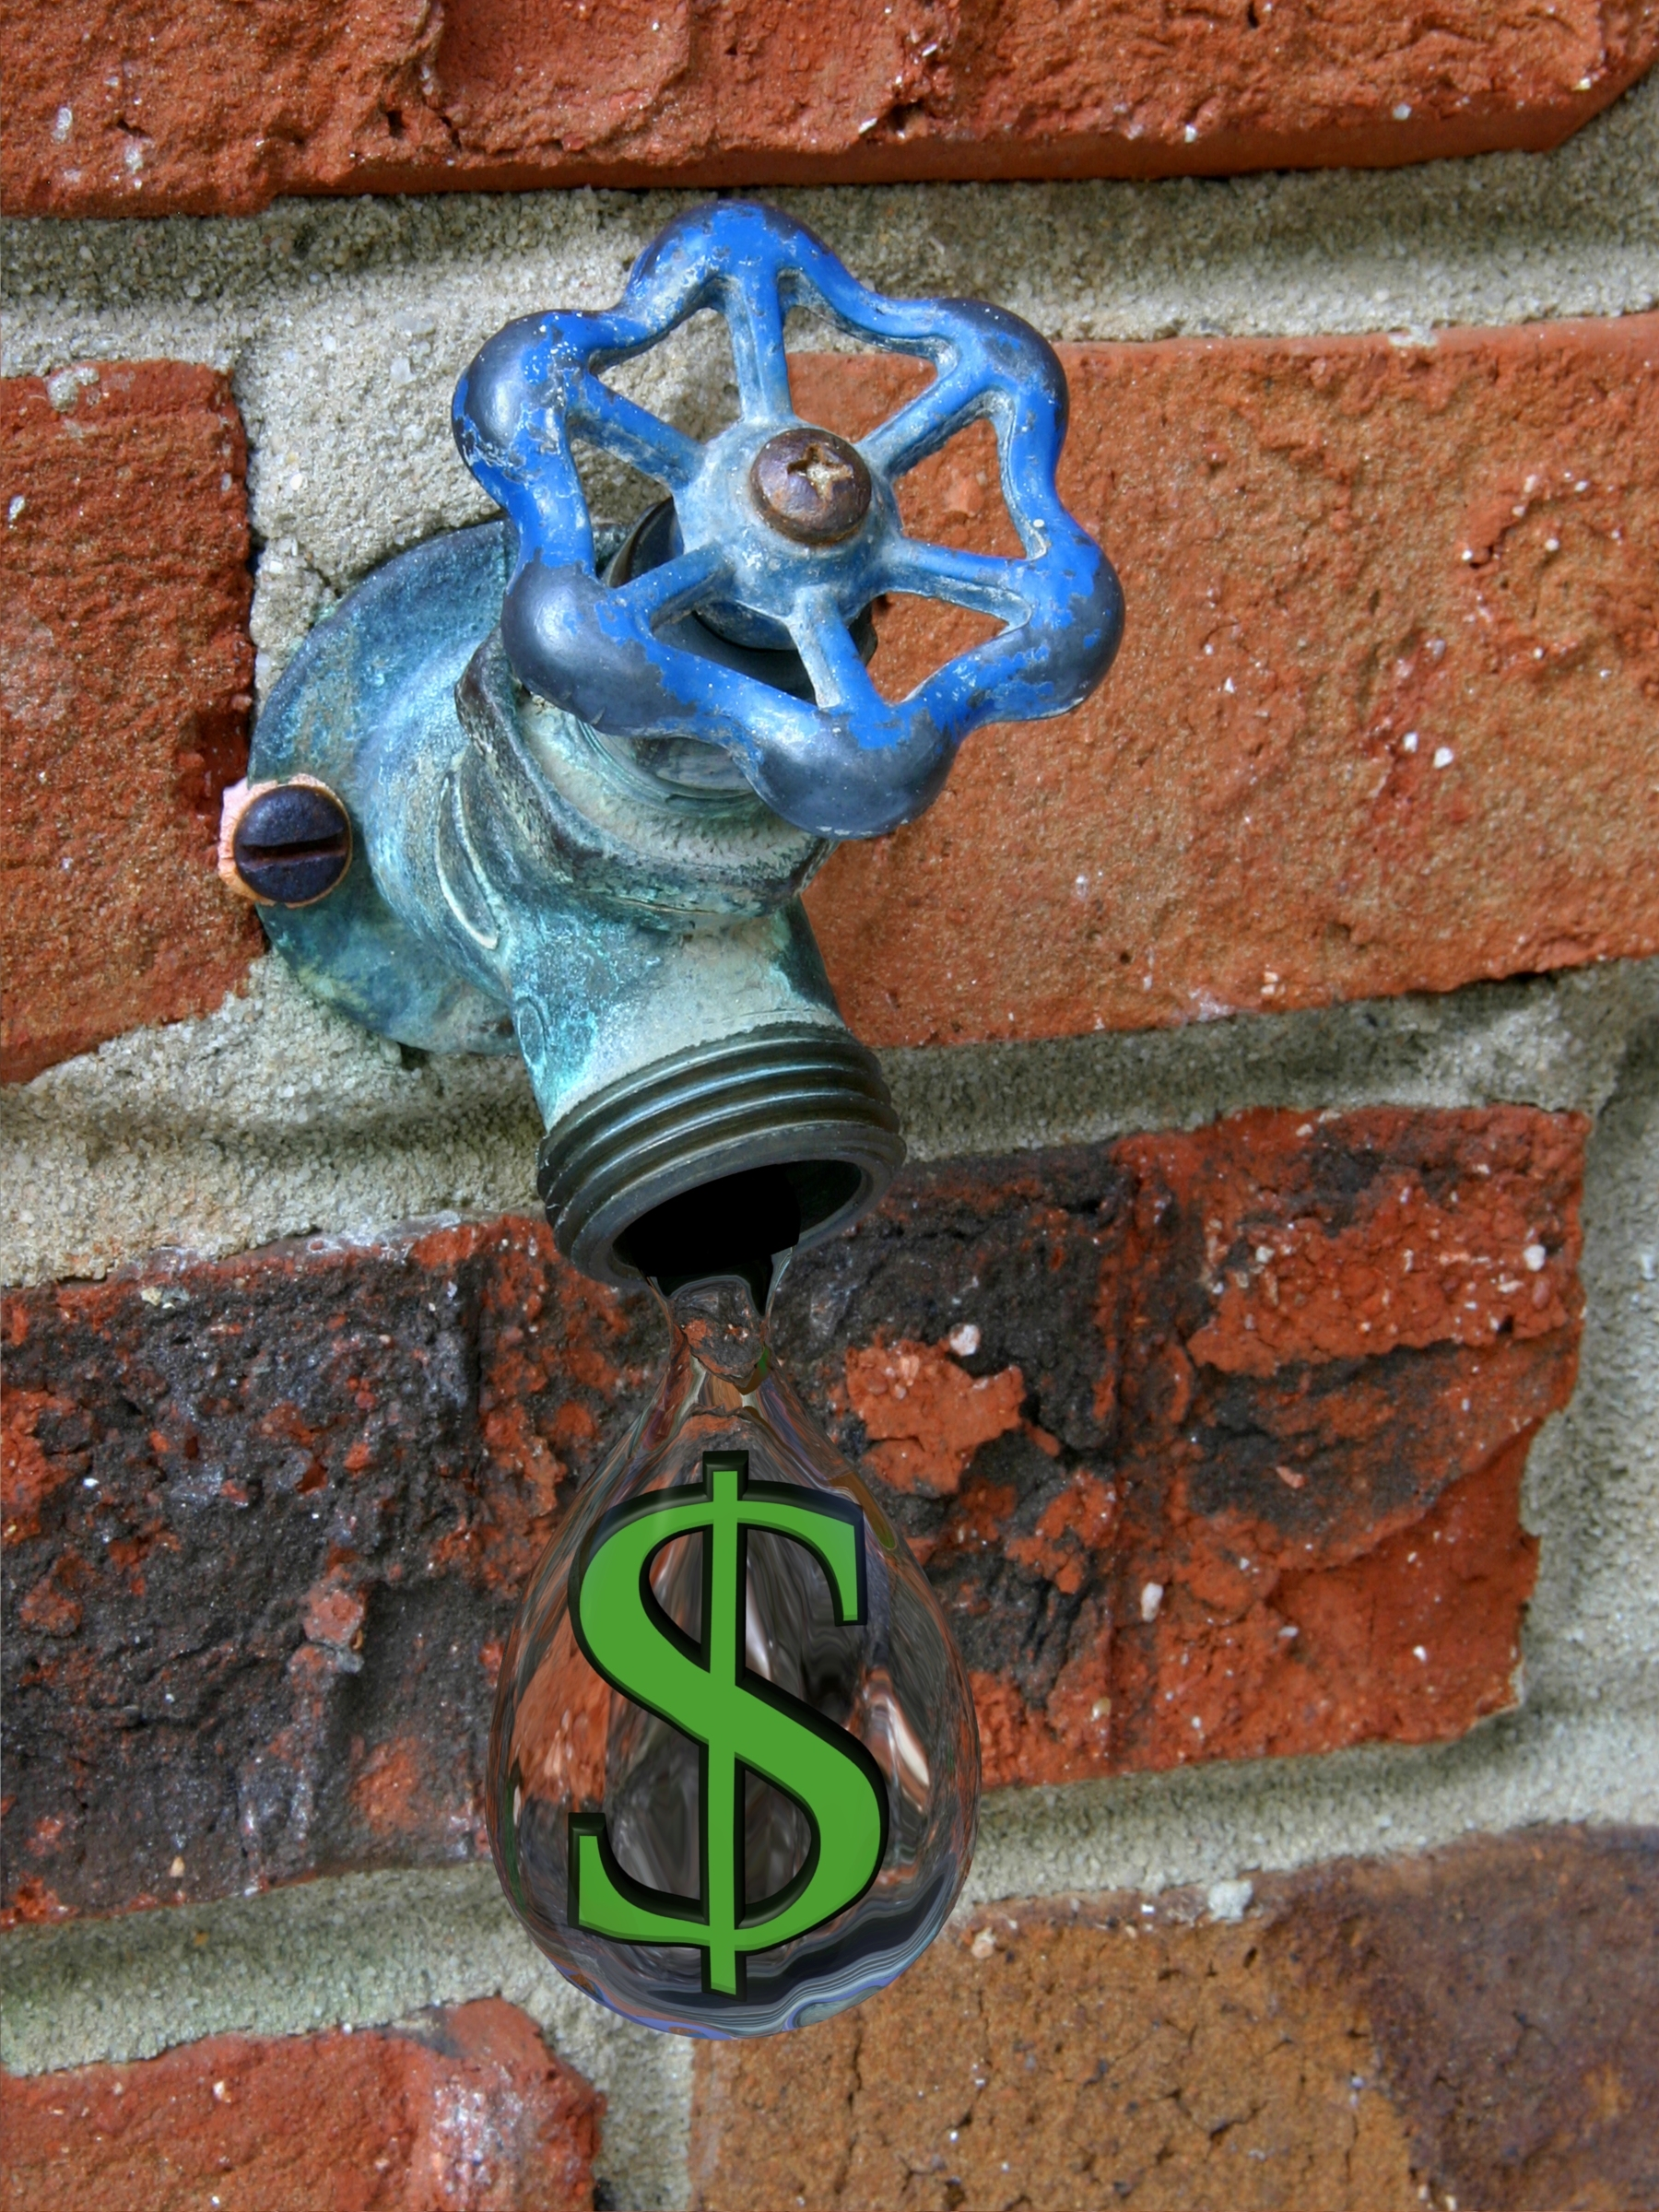 Water drop with a dollar sign inside. Money down the drain, or visualizing the cost of wasting water.